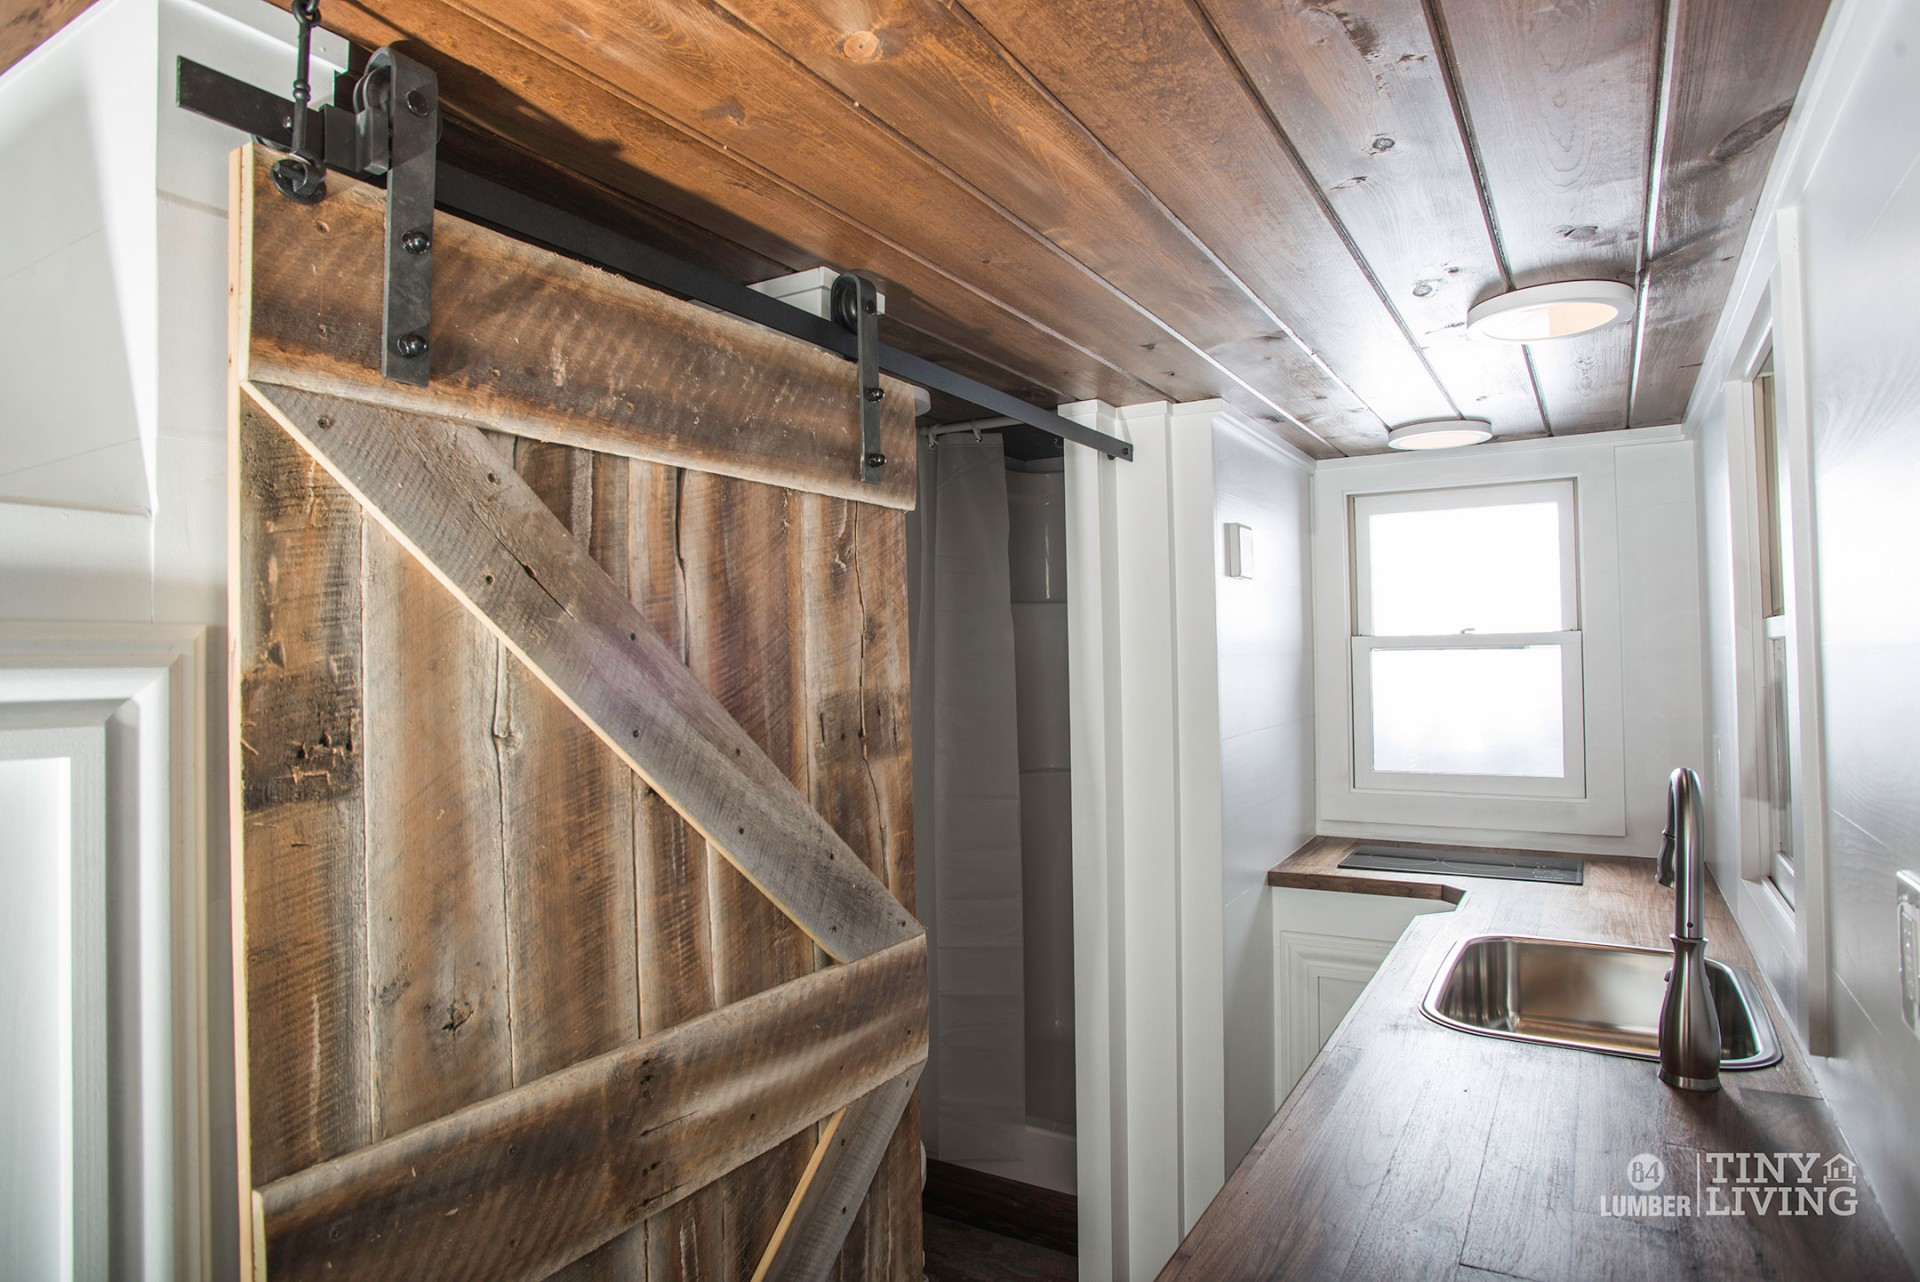 Tiny home kitchen - The Roving Kitchen And Rolling Door By 84 Tiny Houses 84 Lumber